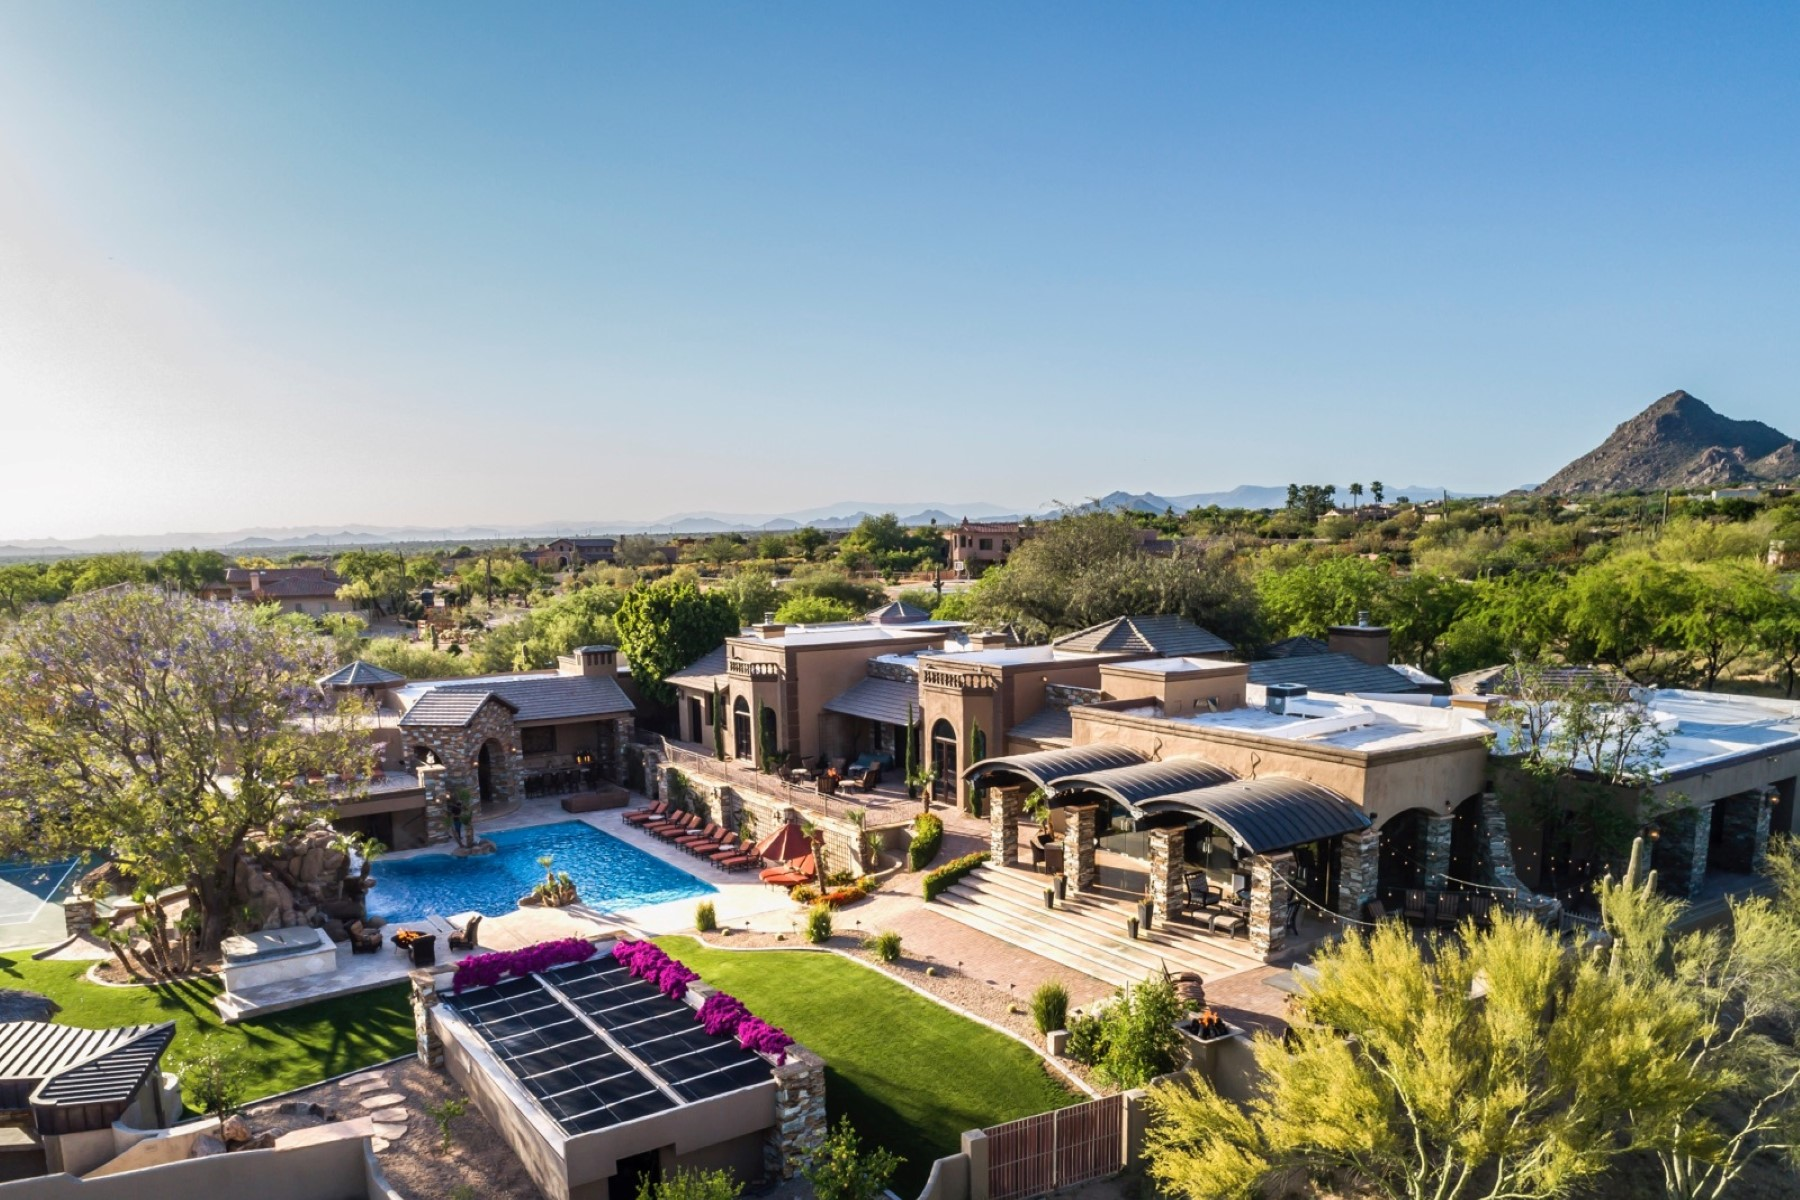 Single Family Home for Sale at Private 8 plus acre North Scottsdale Estate 23035 N Church Road Scottsdale, Arizona 85255 United States